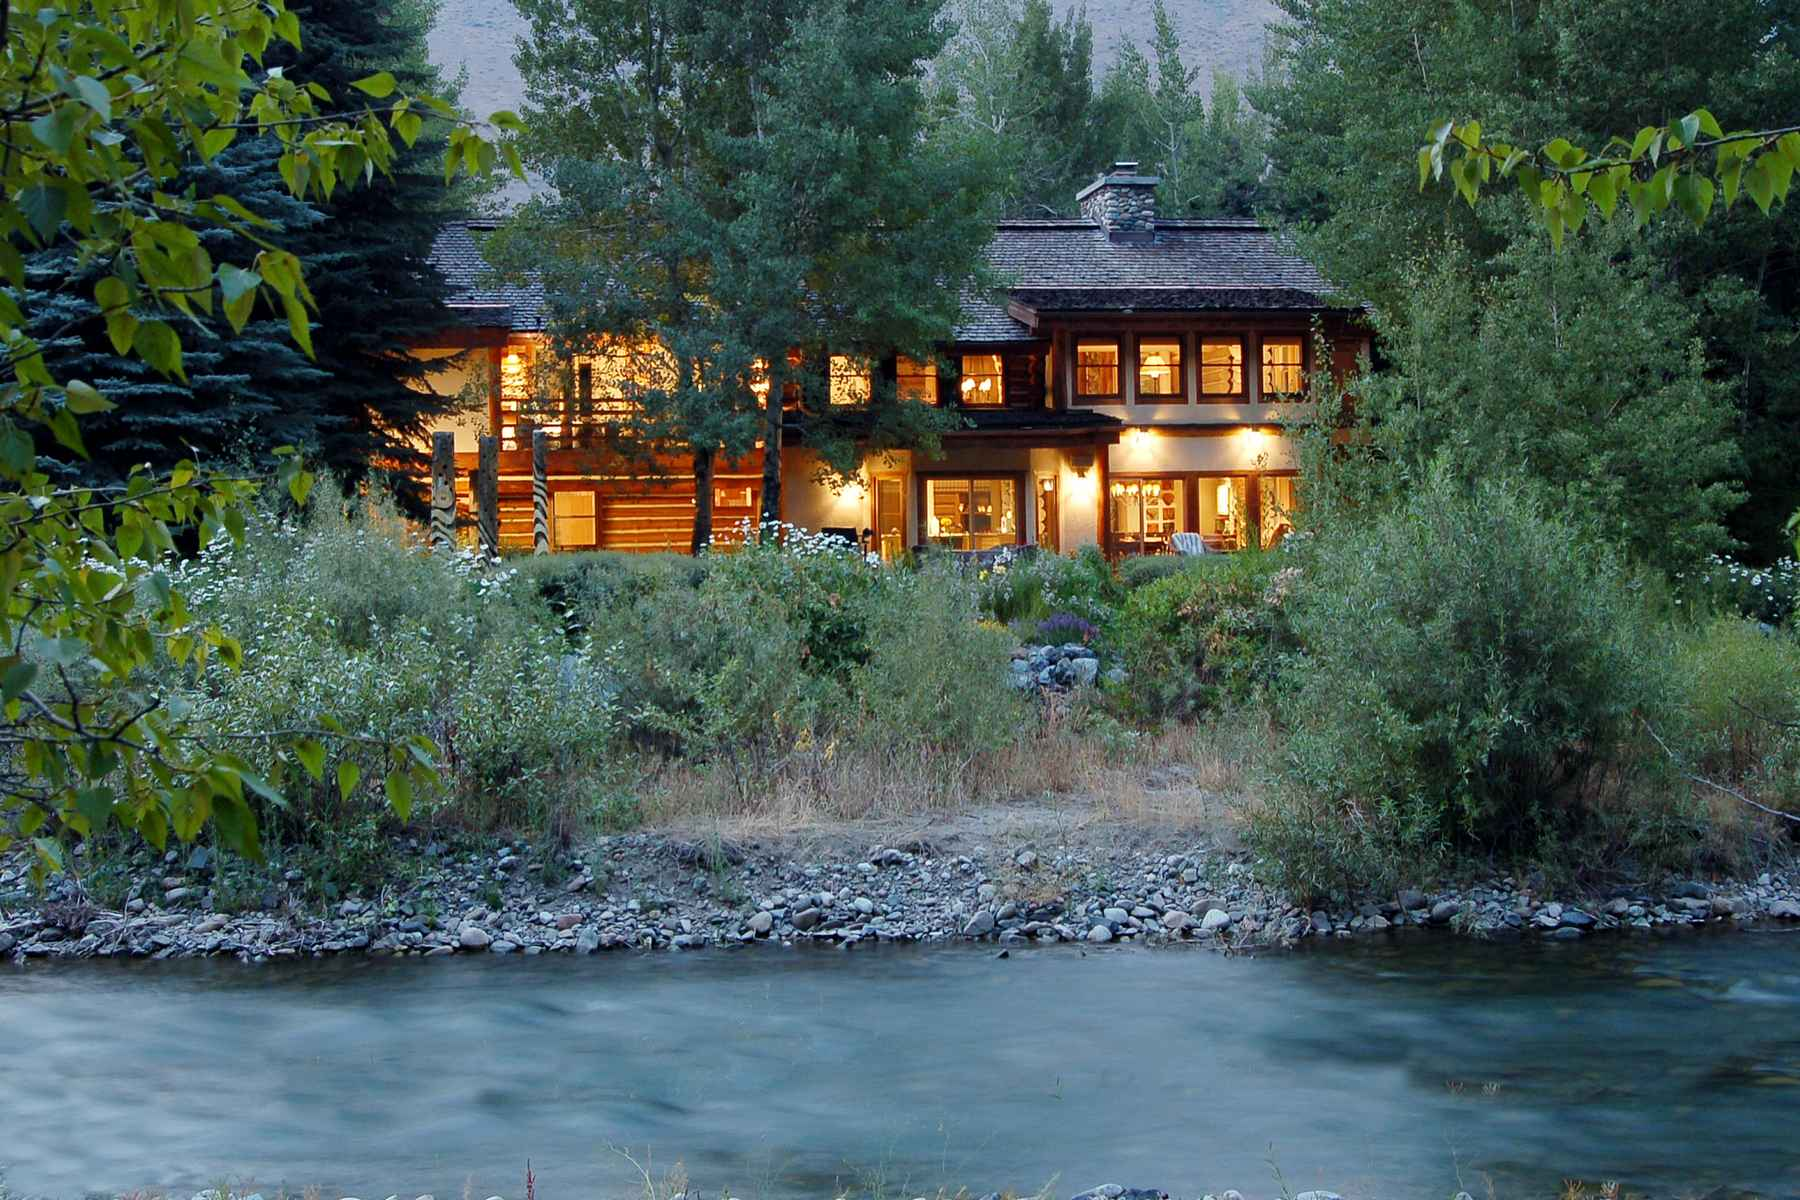 Single Family Home for Sale at Sweet Irene 130 Irene St. Ketchum, Idaho 83340 United States